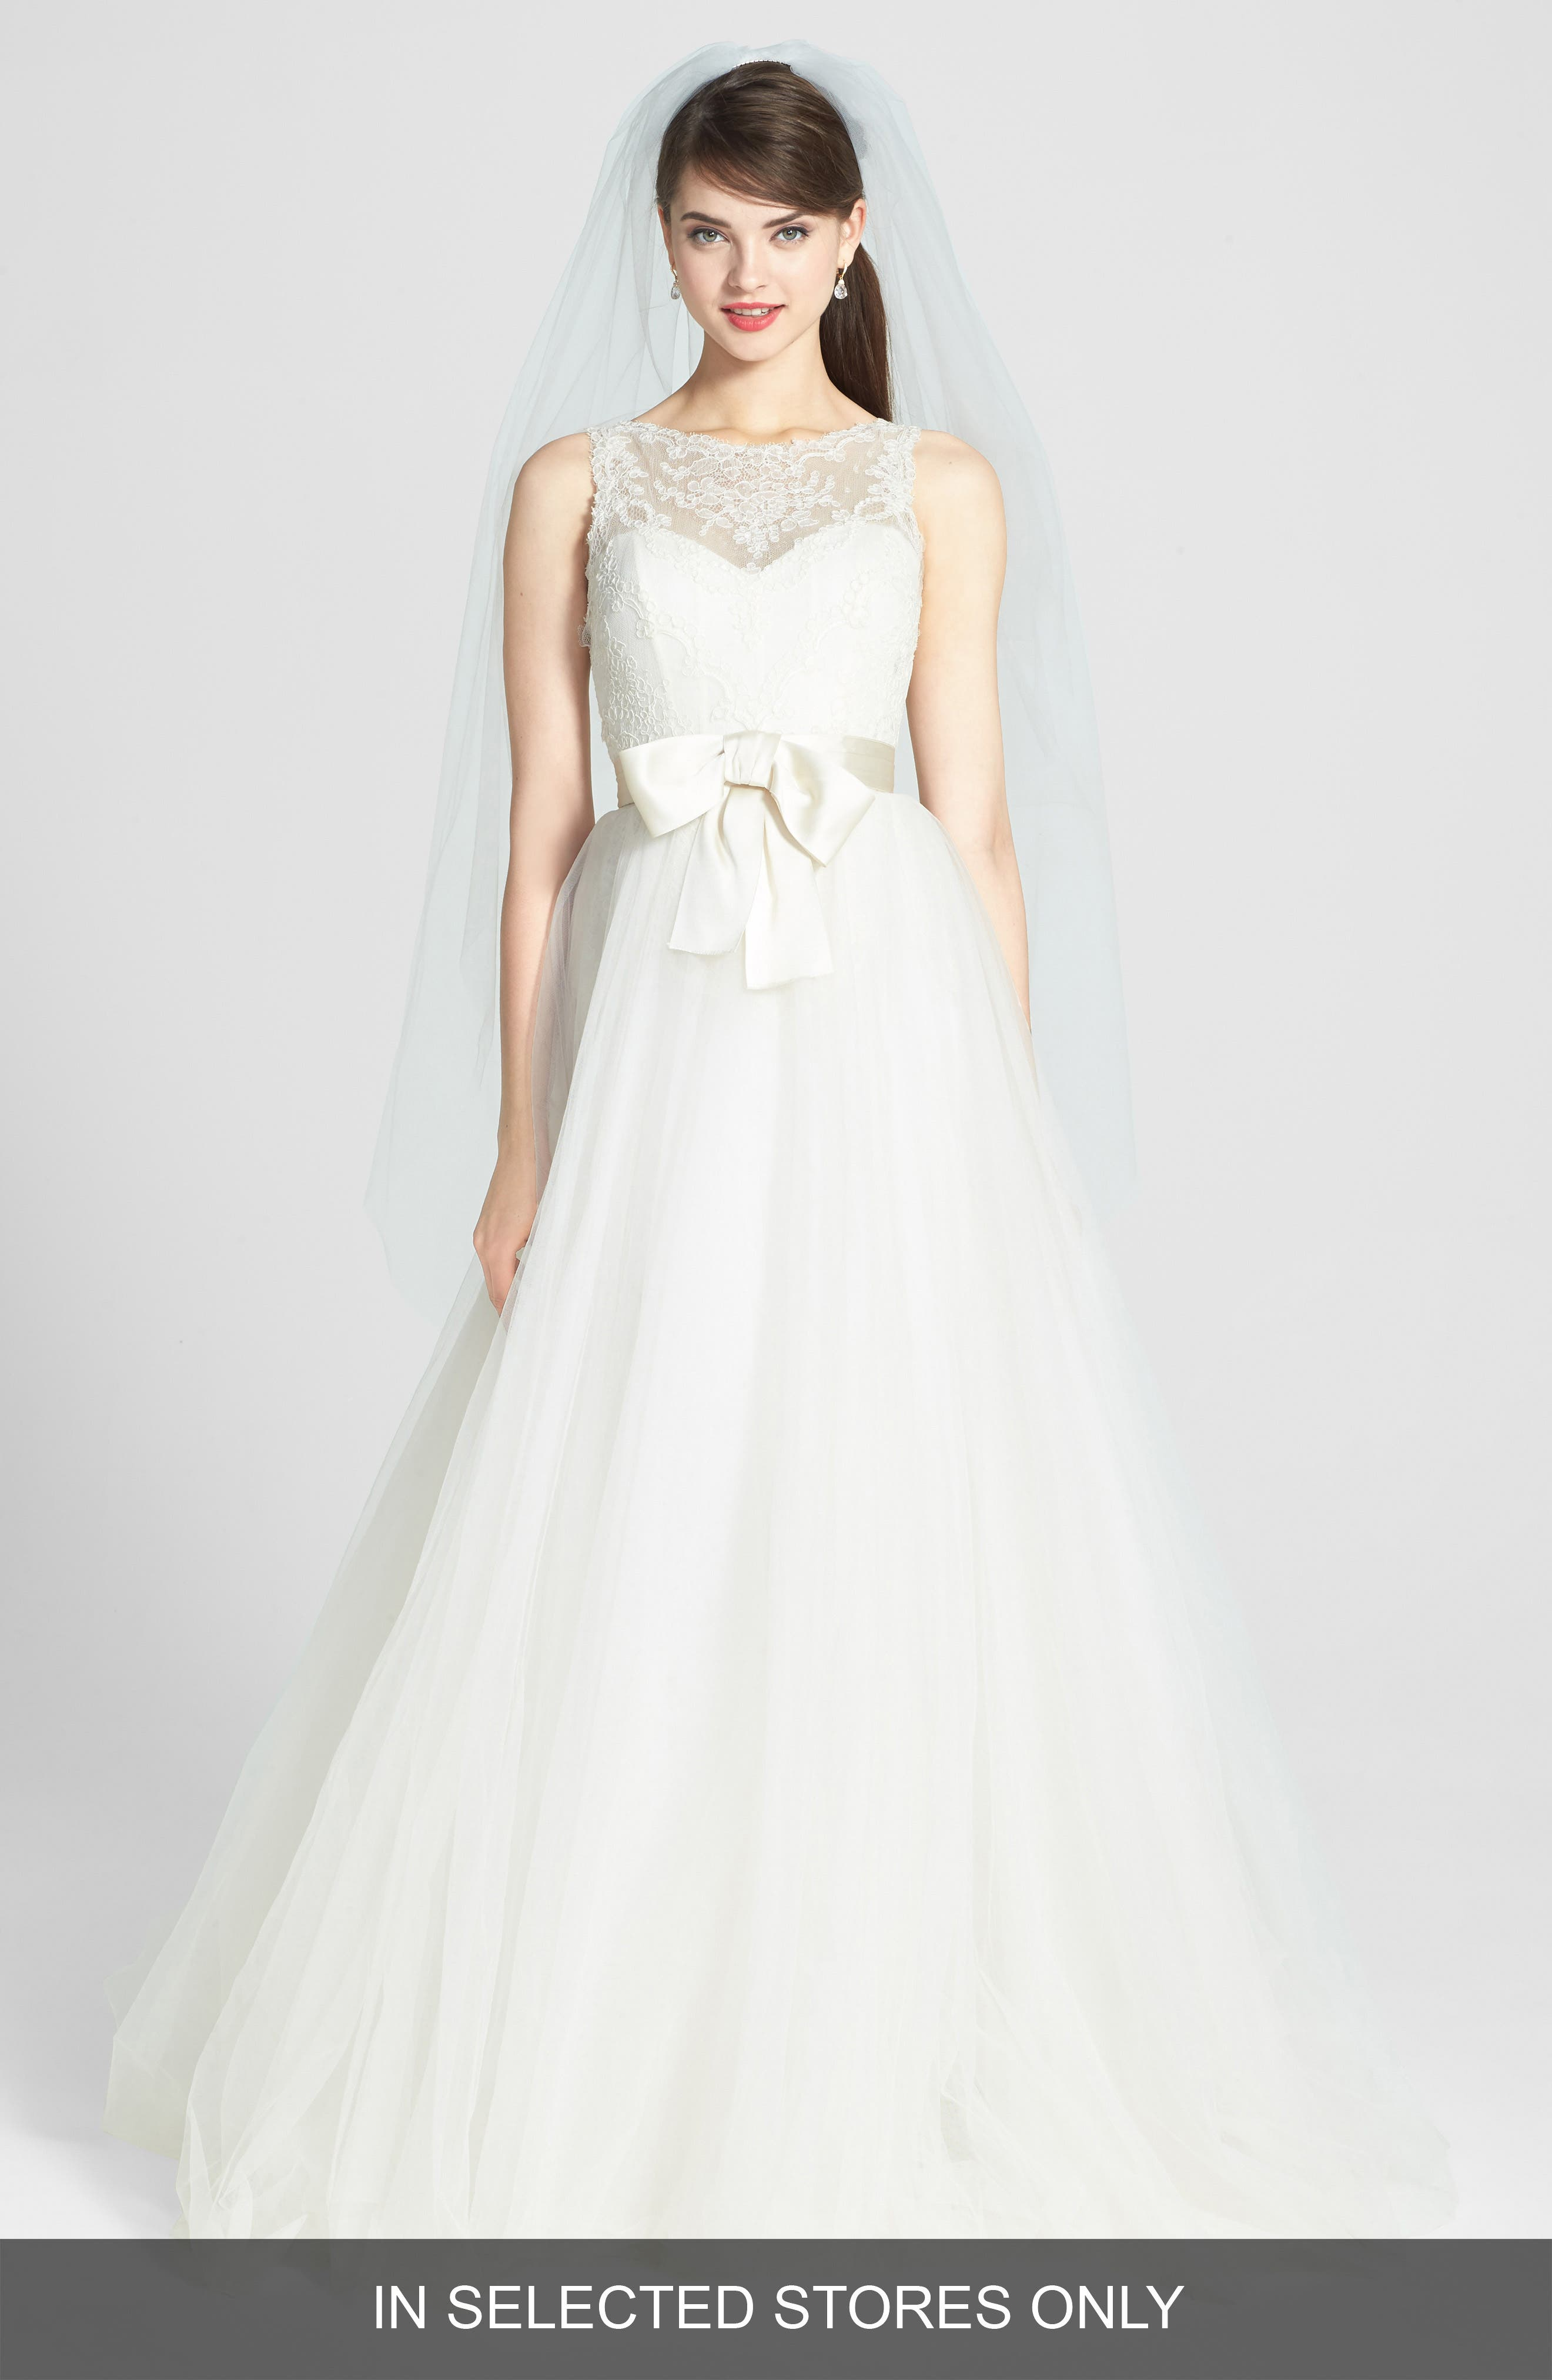 Alternate Image 1 Selected - Amsale Quinn French Lace Illusion Bodice Tulle Wedding Dress